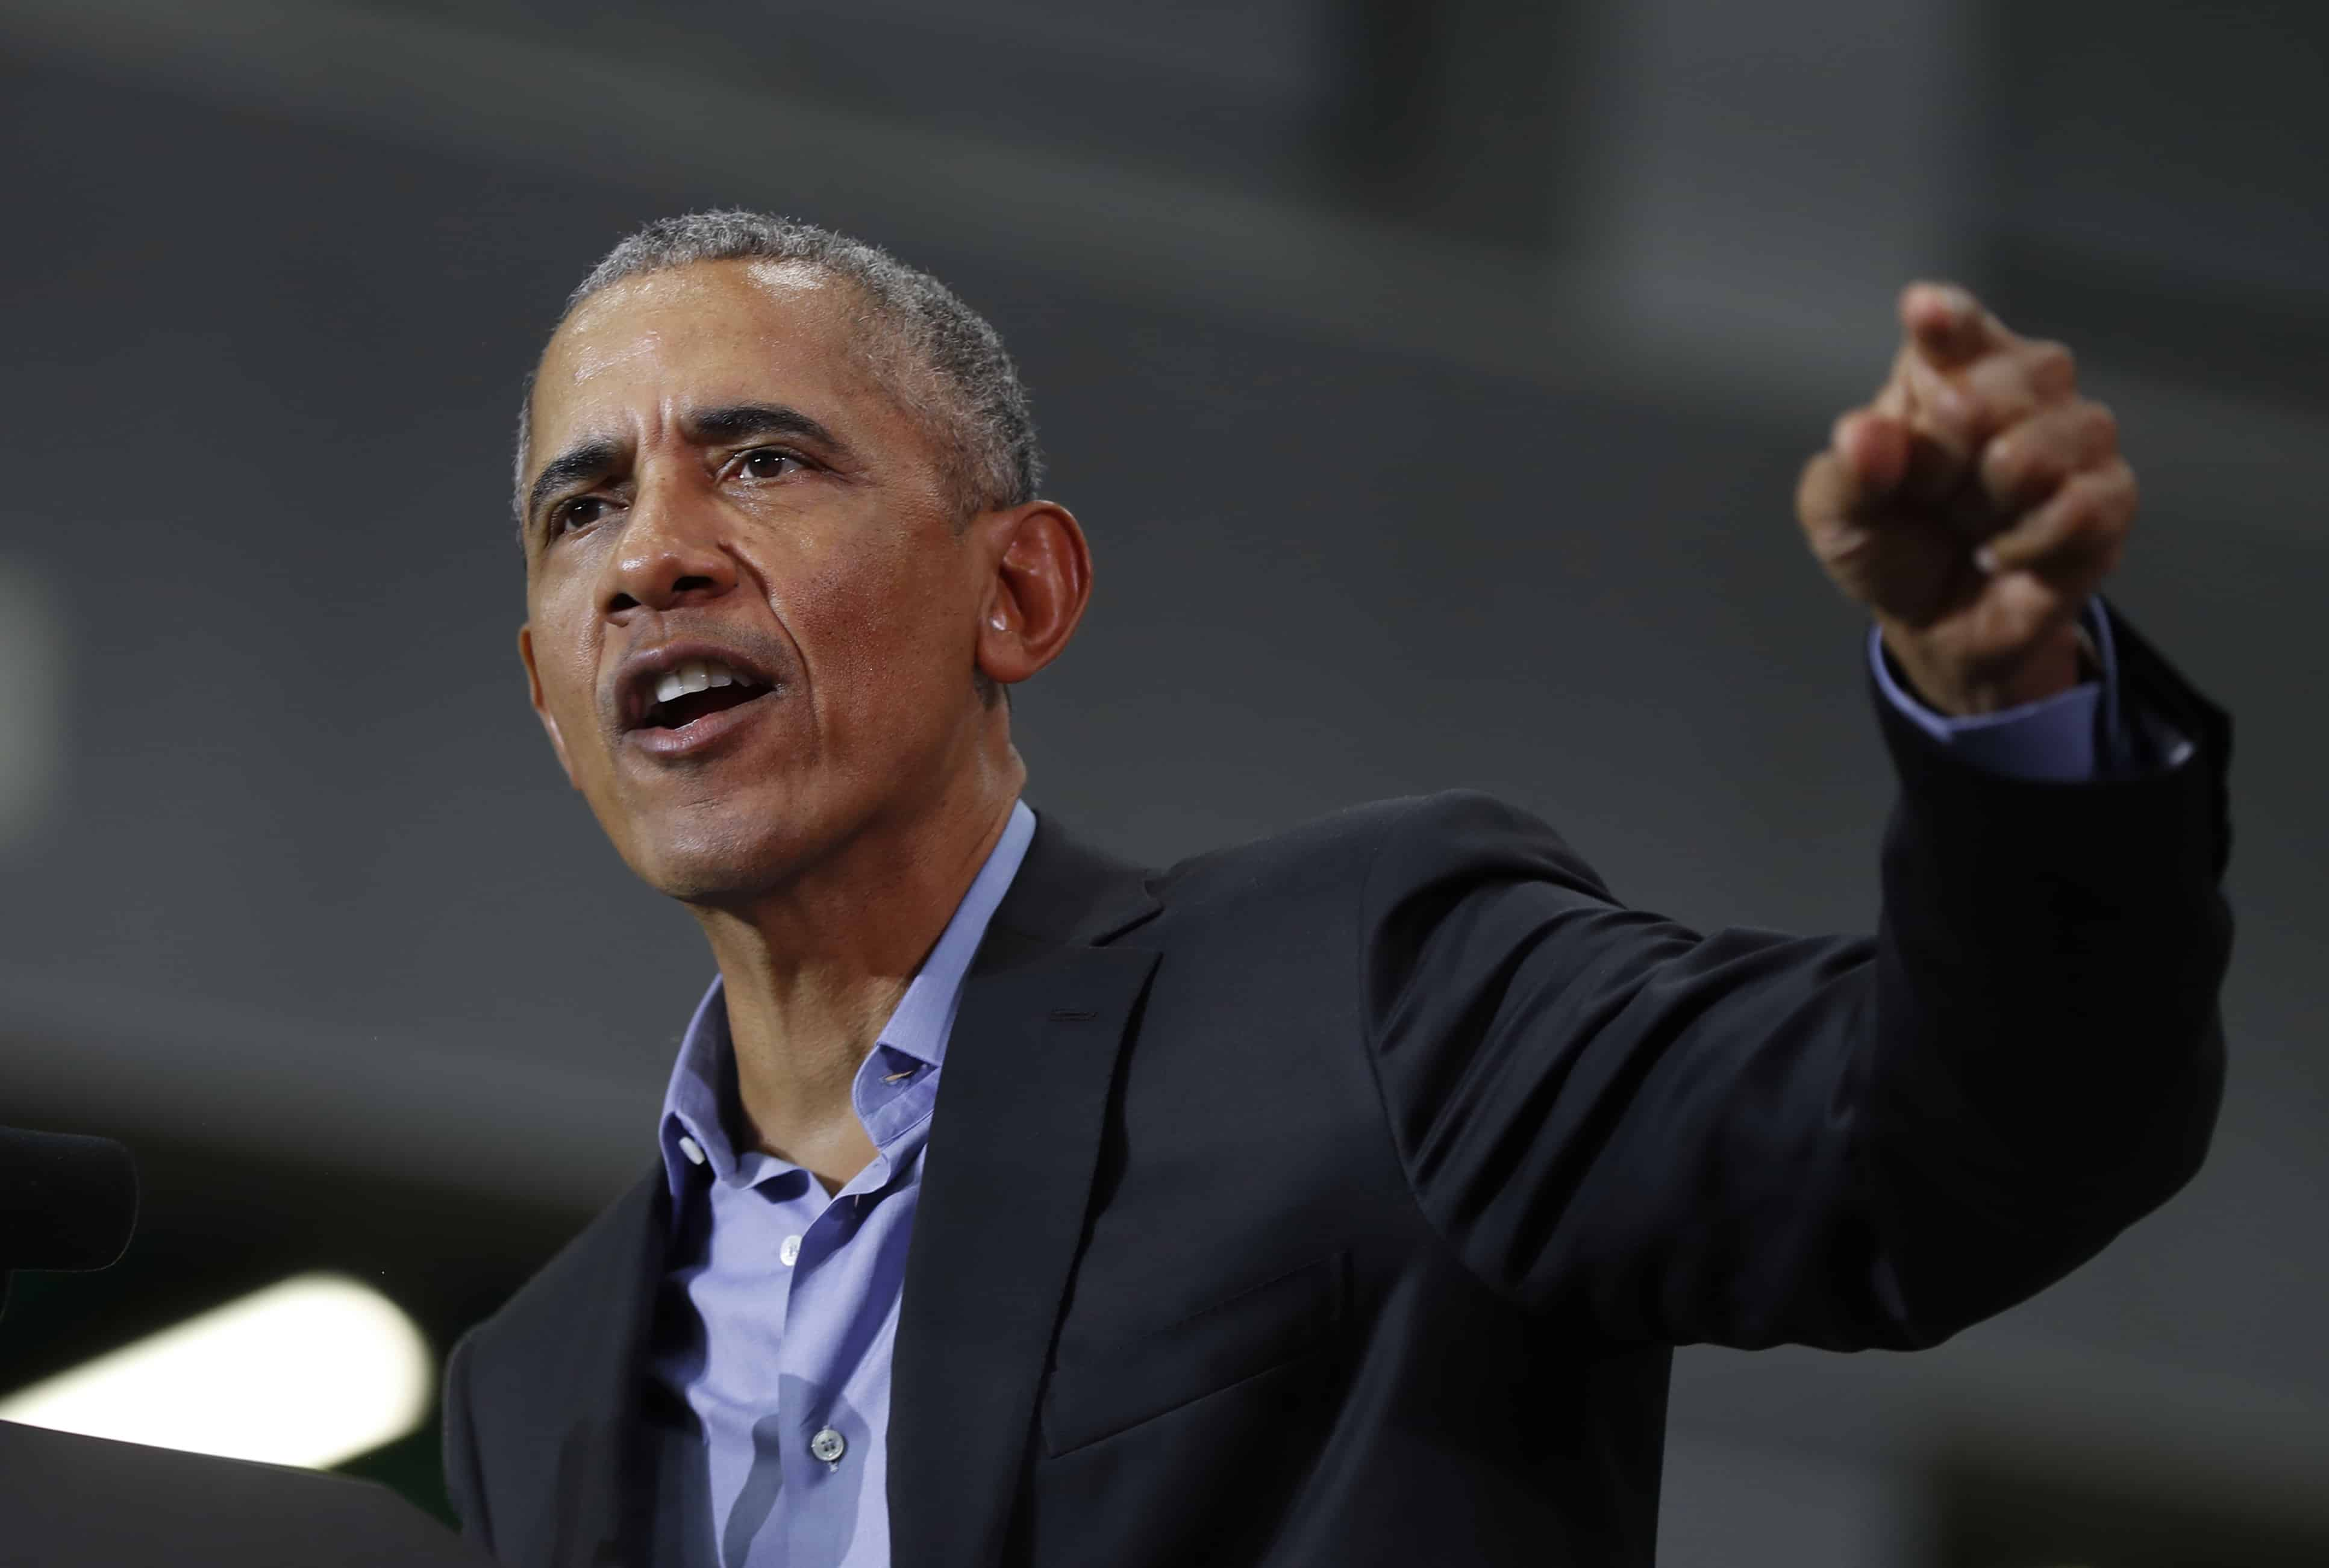 Obama visiting Indiana for rally between Trump's twin ...